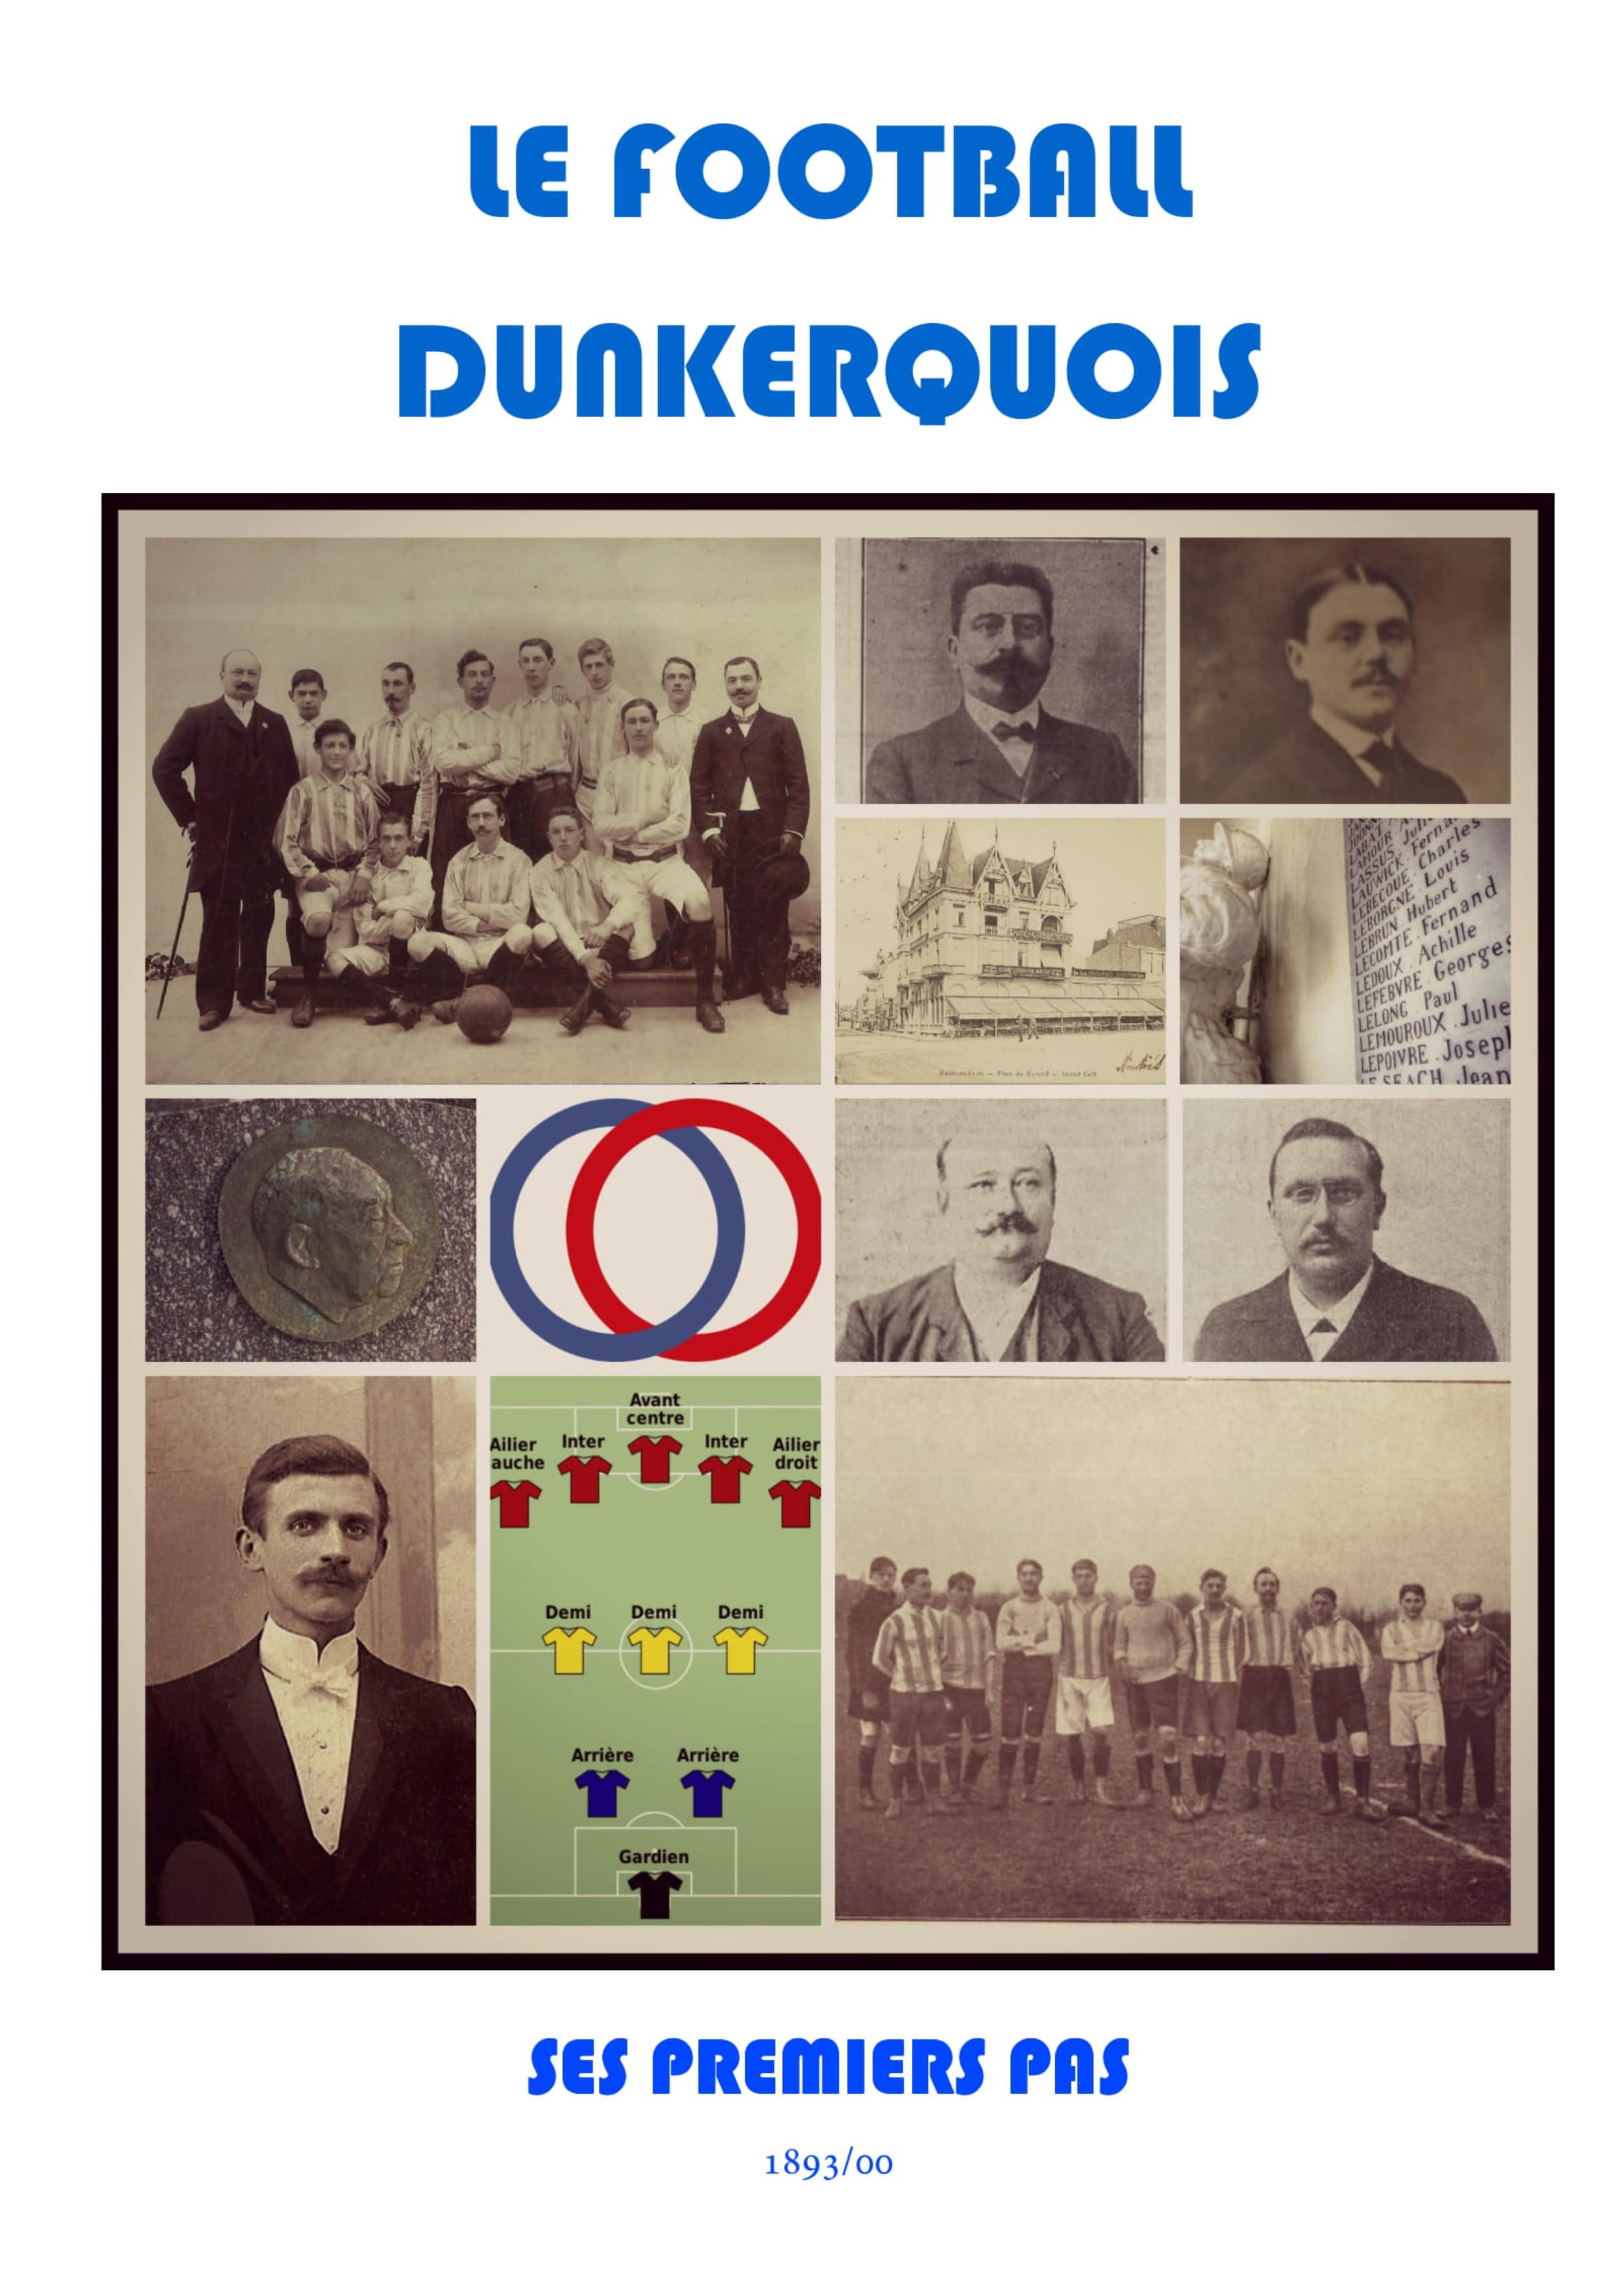 LE FOOTBALL DUNKERQUOIS (1893/00)